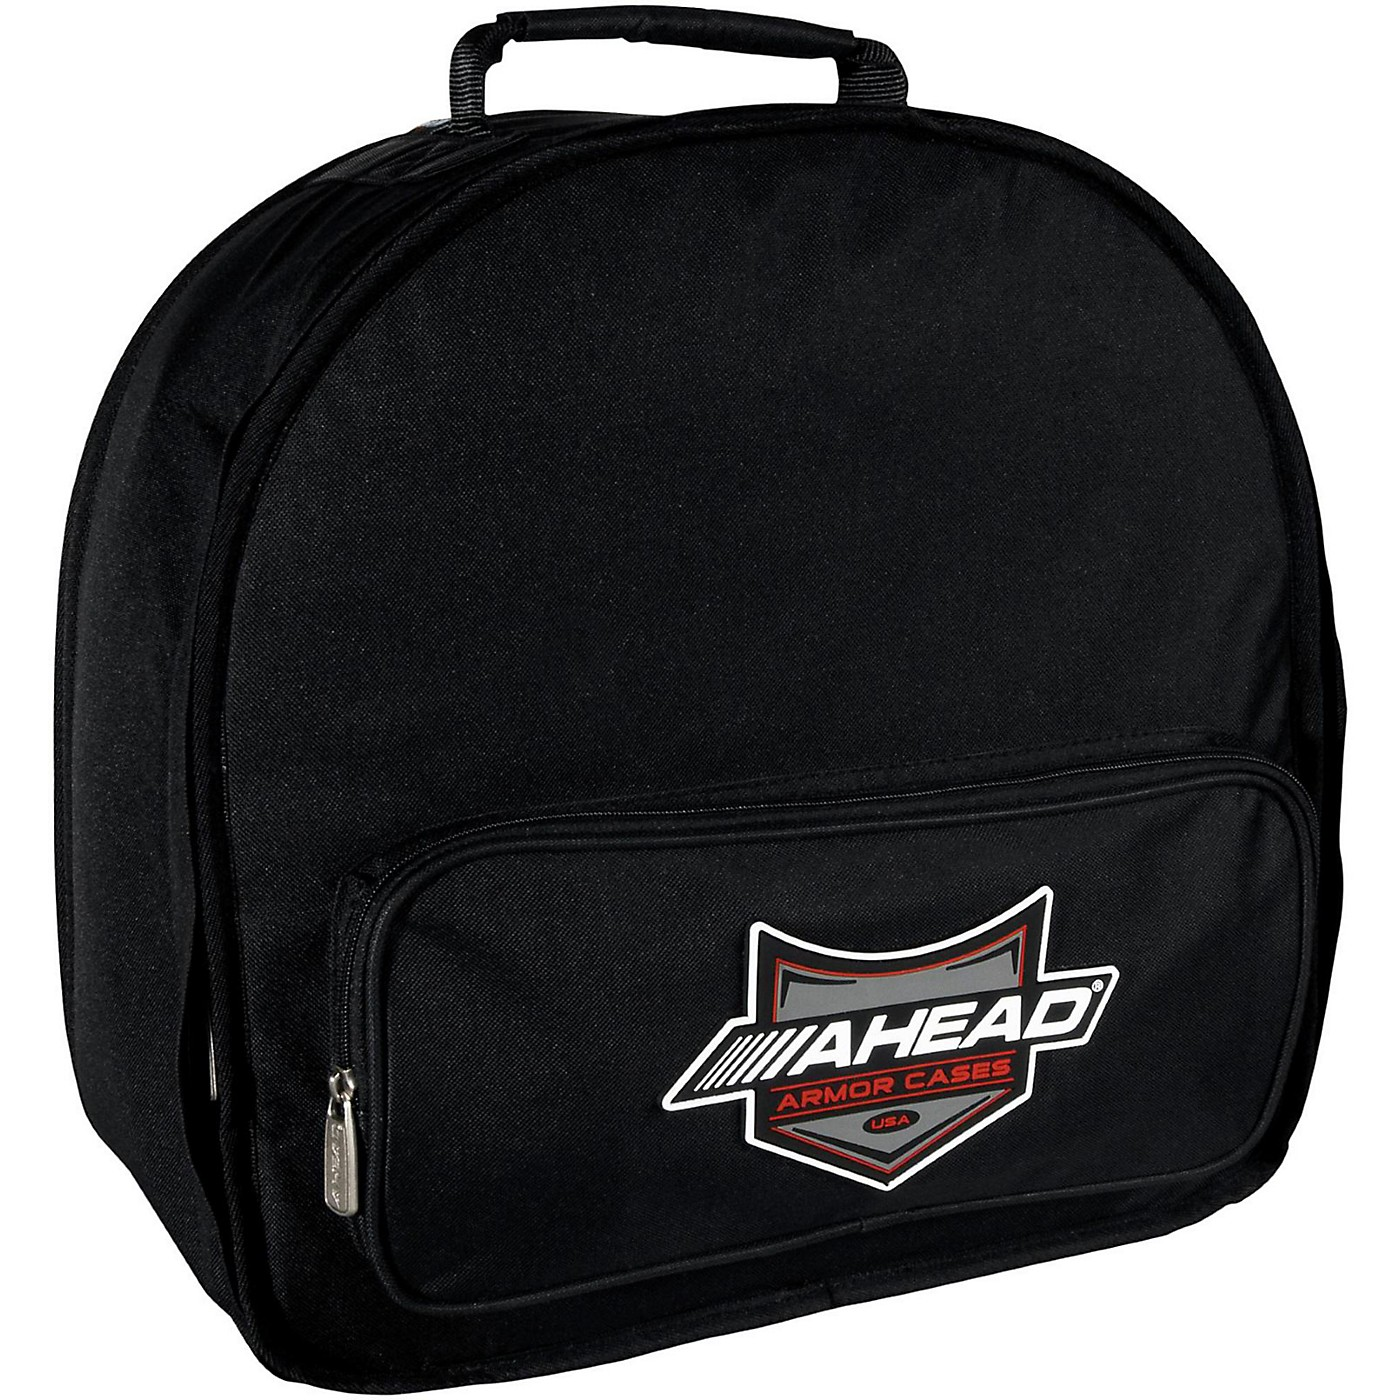 Ahead Armor Cases Large Drum Throne/Snare Case and Stand thumbnail